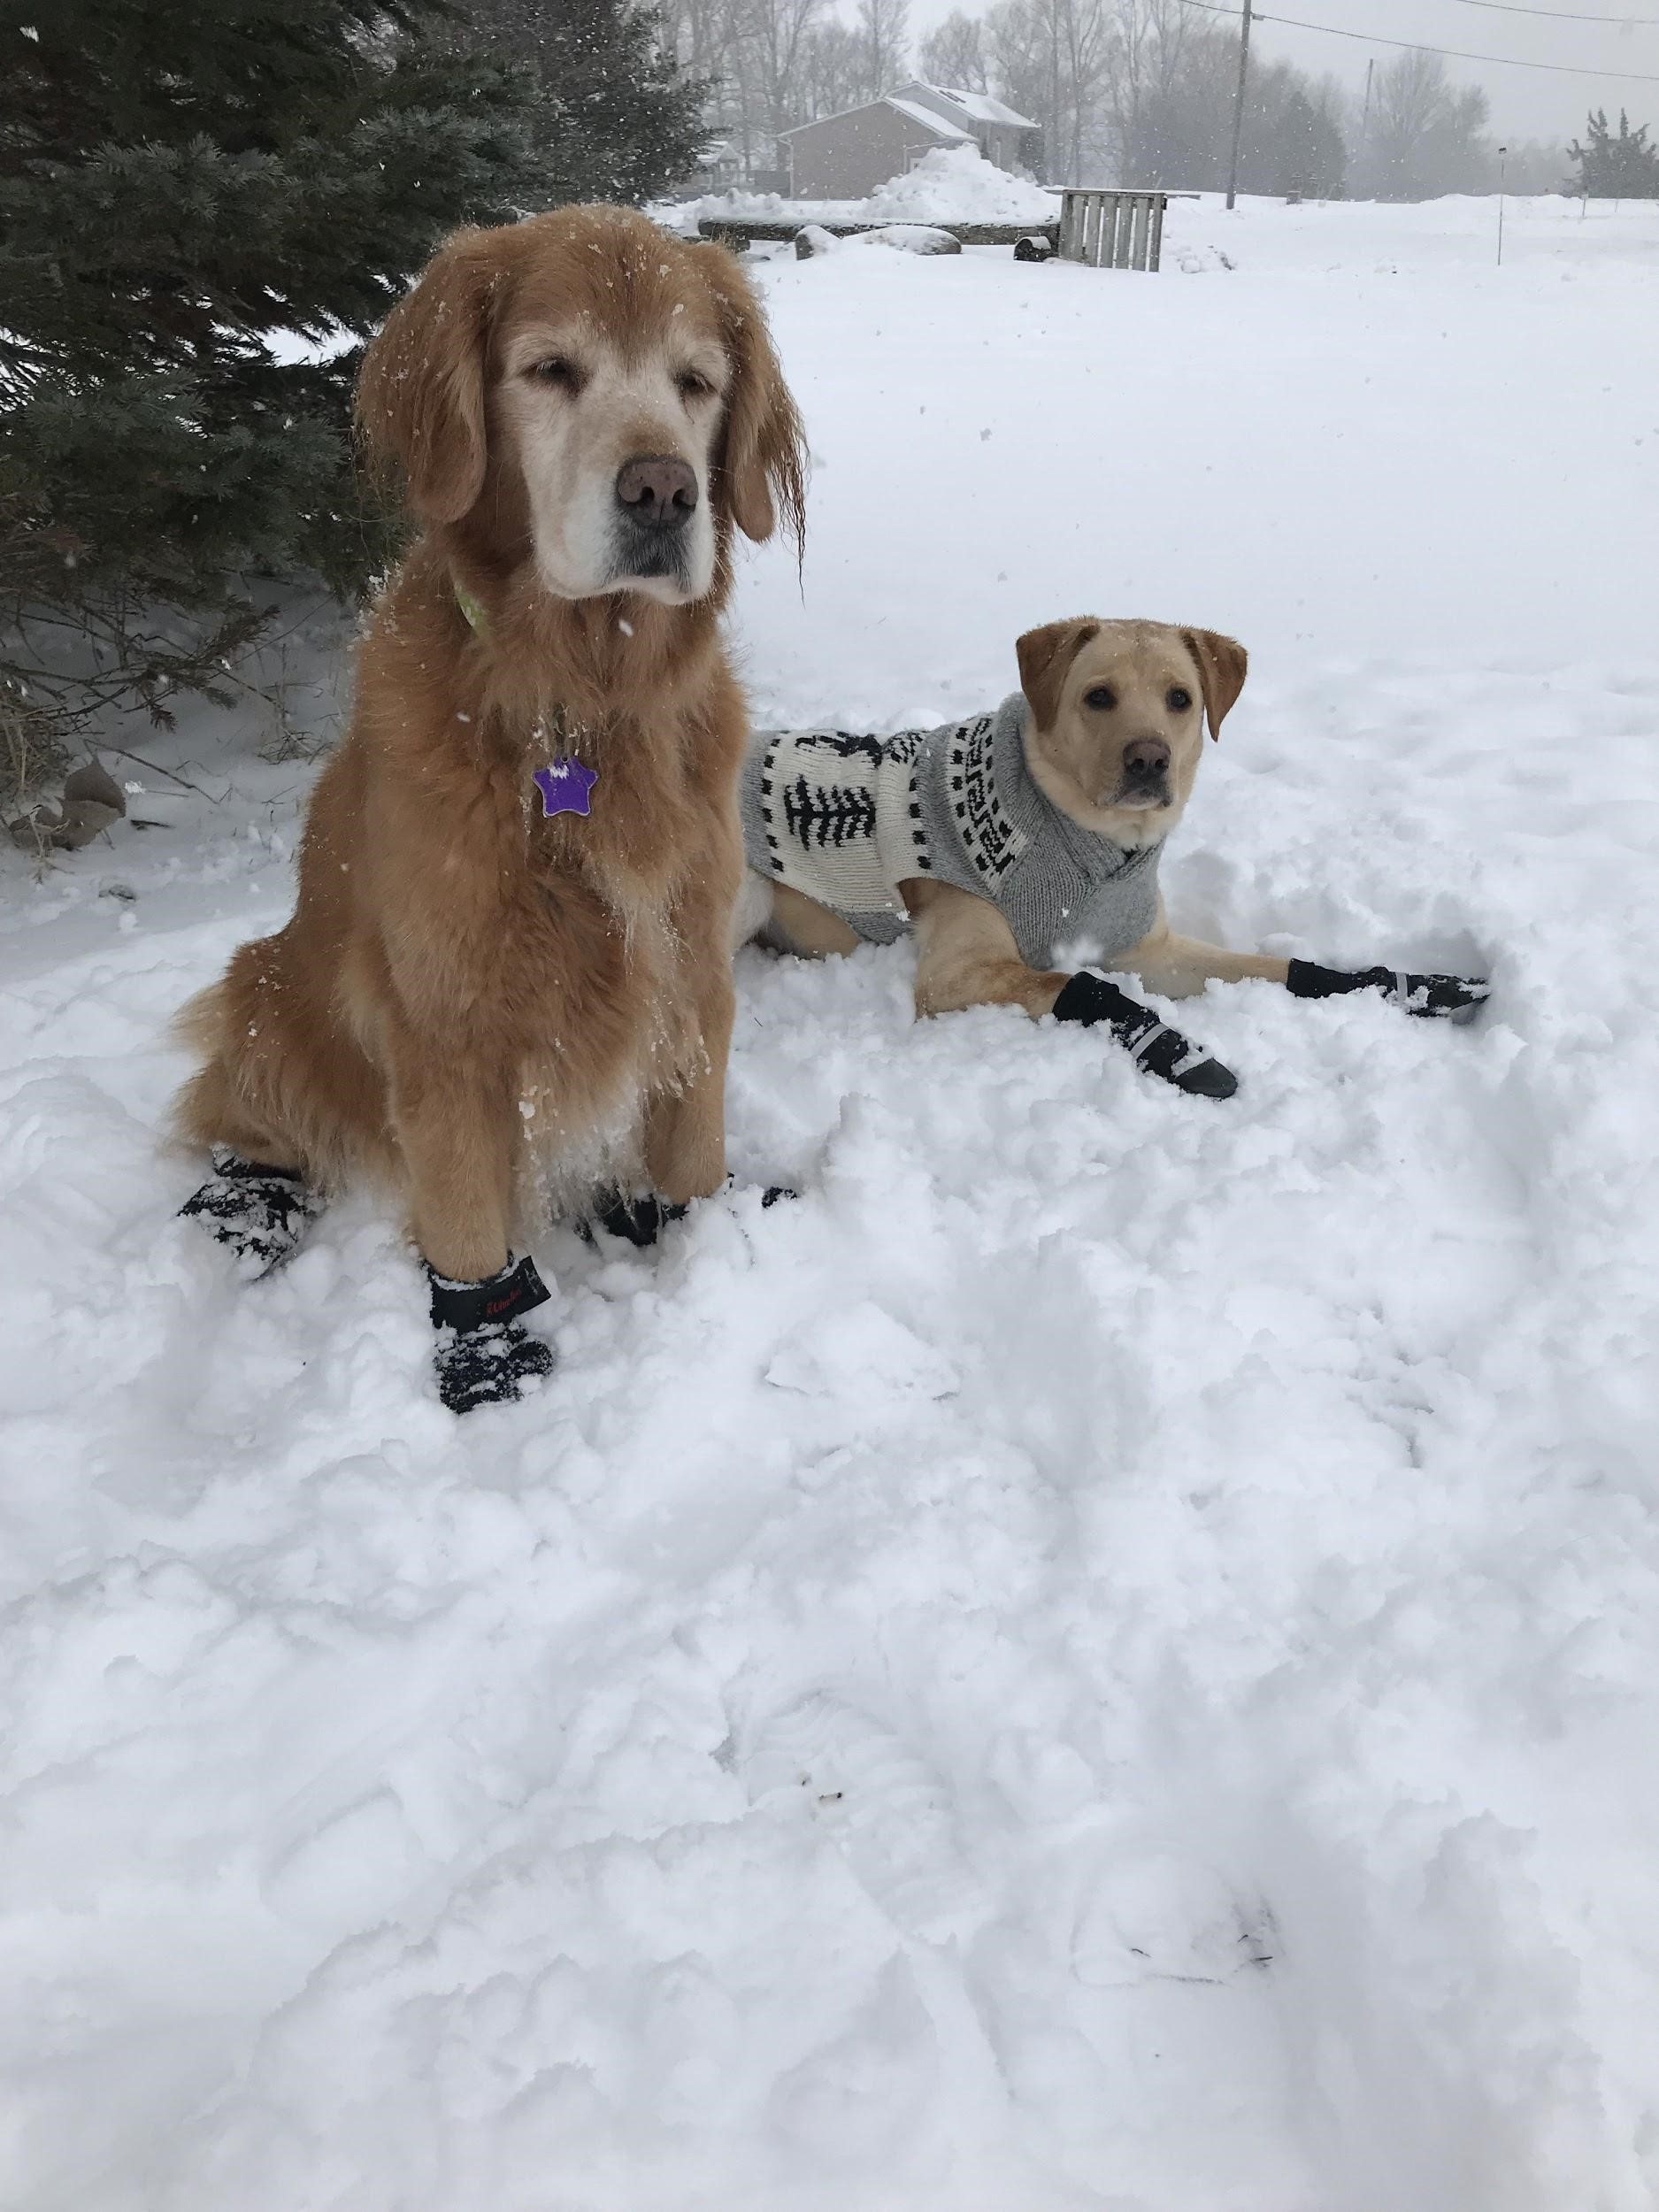 Two dogs sitting in snow